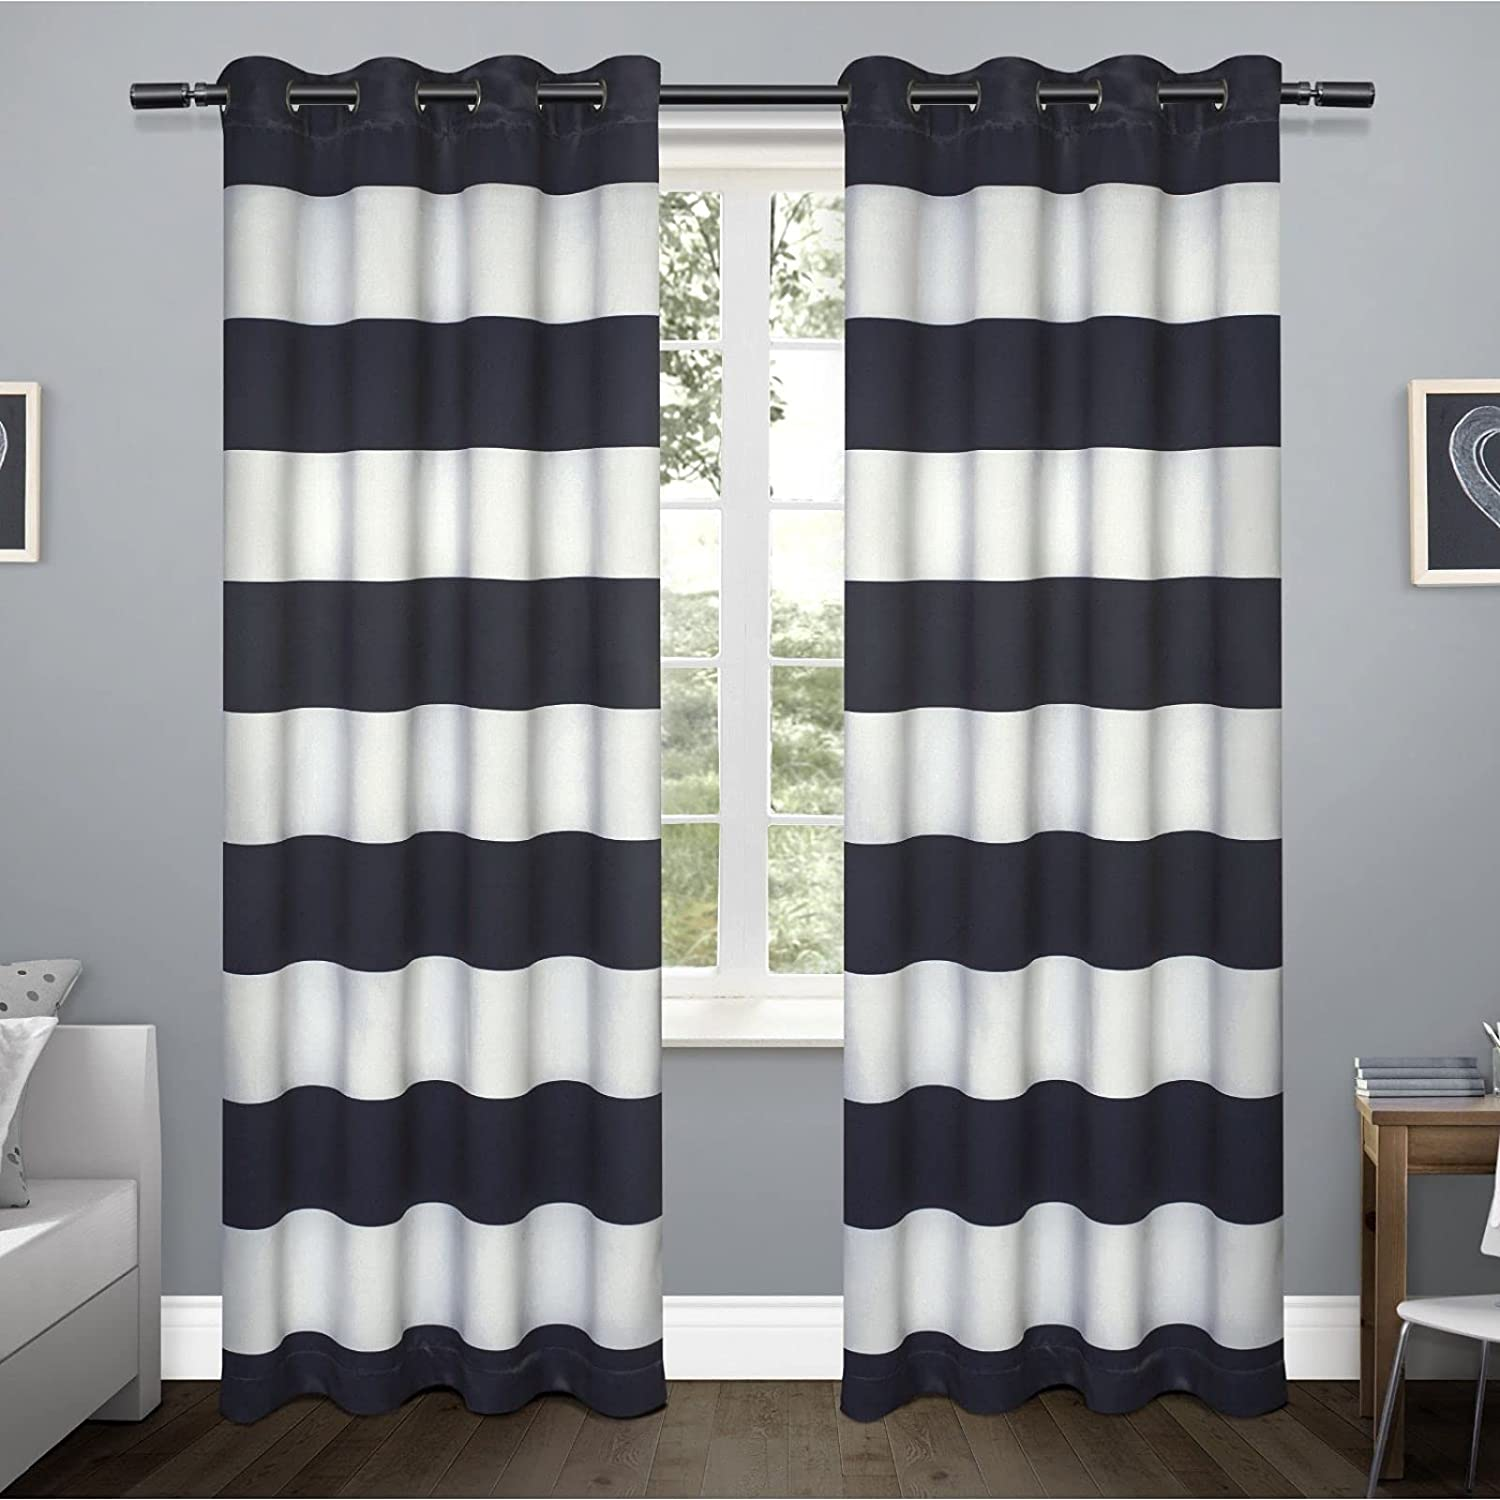 Albuquerque Mall All items free shipping Exclusive Home Curtains Rugby Sateen Panel Window Curtain Pair w